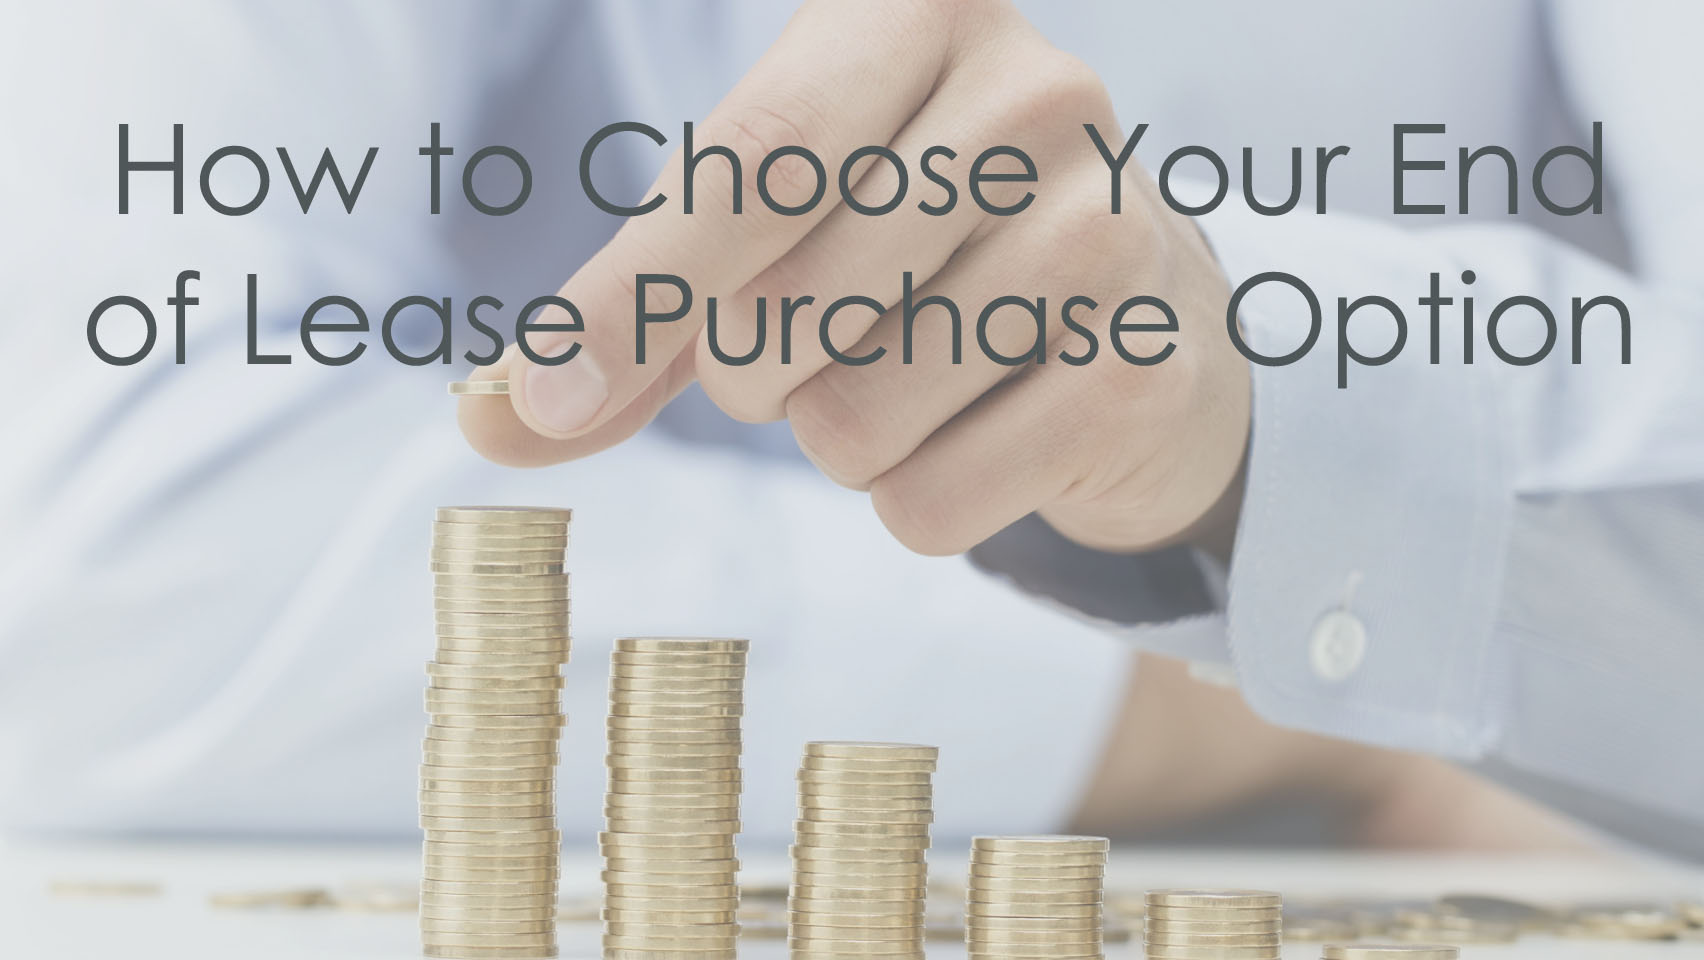 save money by choosing the best end of lease purchase option